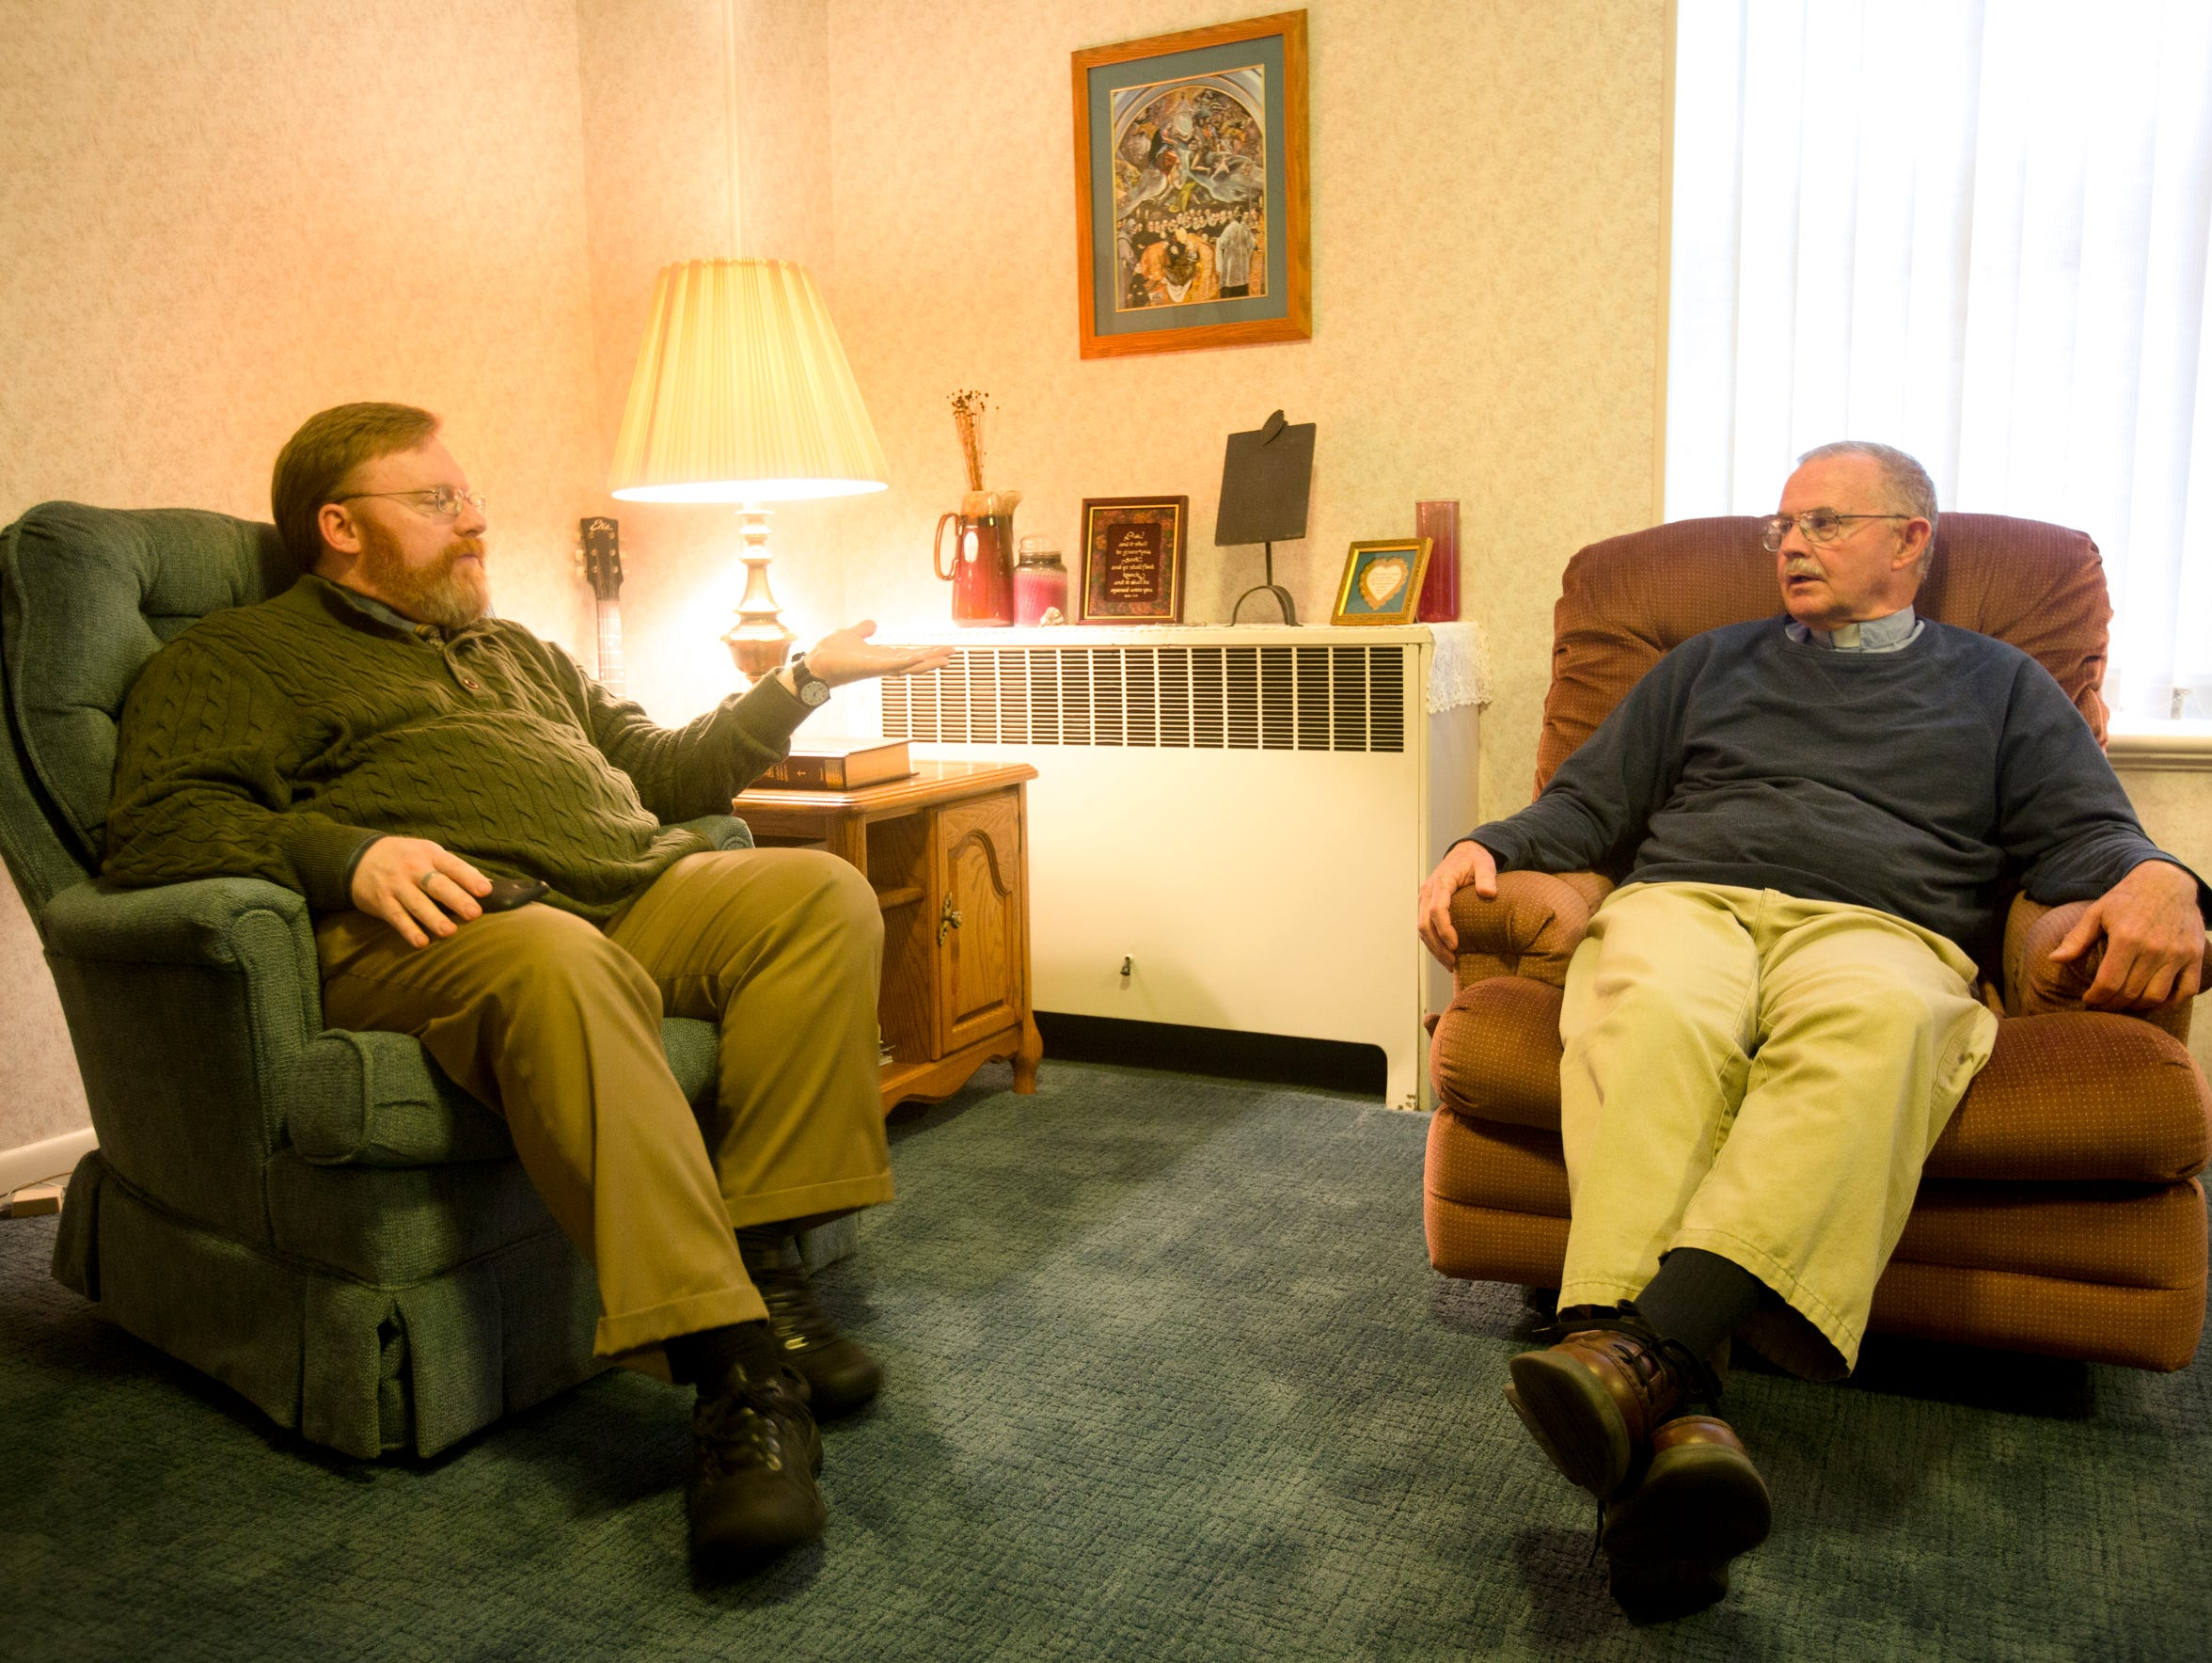 The Rev. Tom Hemm talks to Michael about fundraising